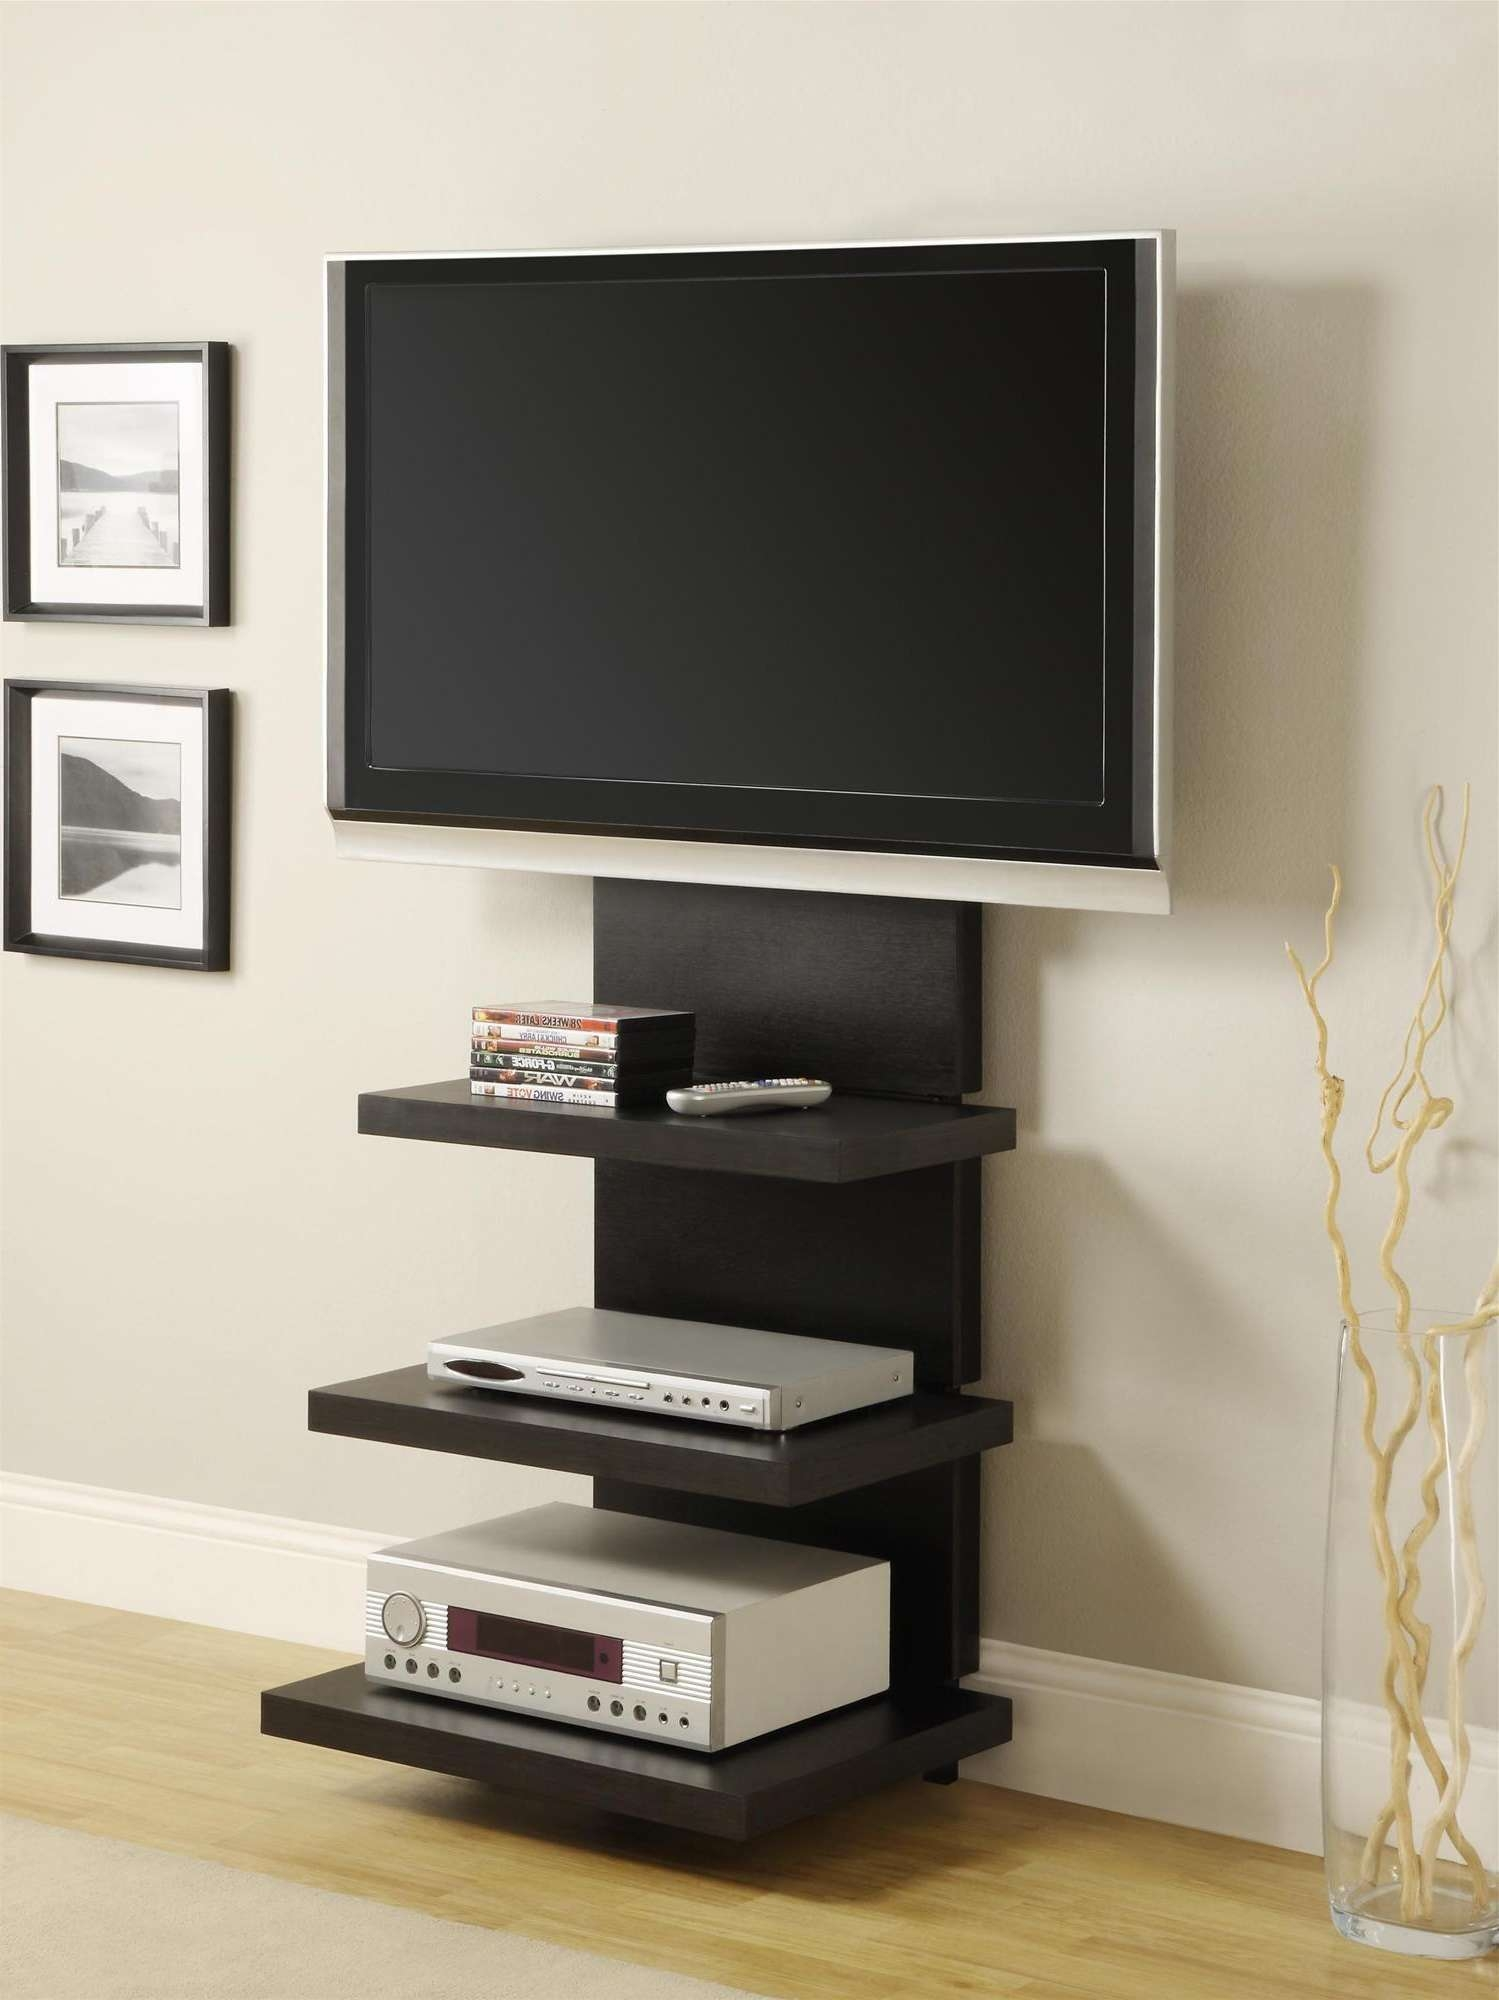 Tv : Engaging 65 Inch Tv Stands With Integrated Mount Gripping 65 For 65 Inch Tv Stands With Integrated Mount (View 3 of 15)